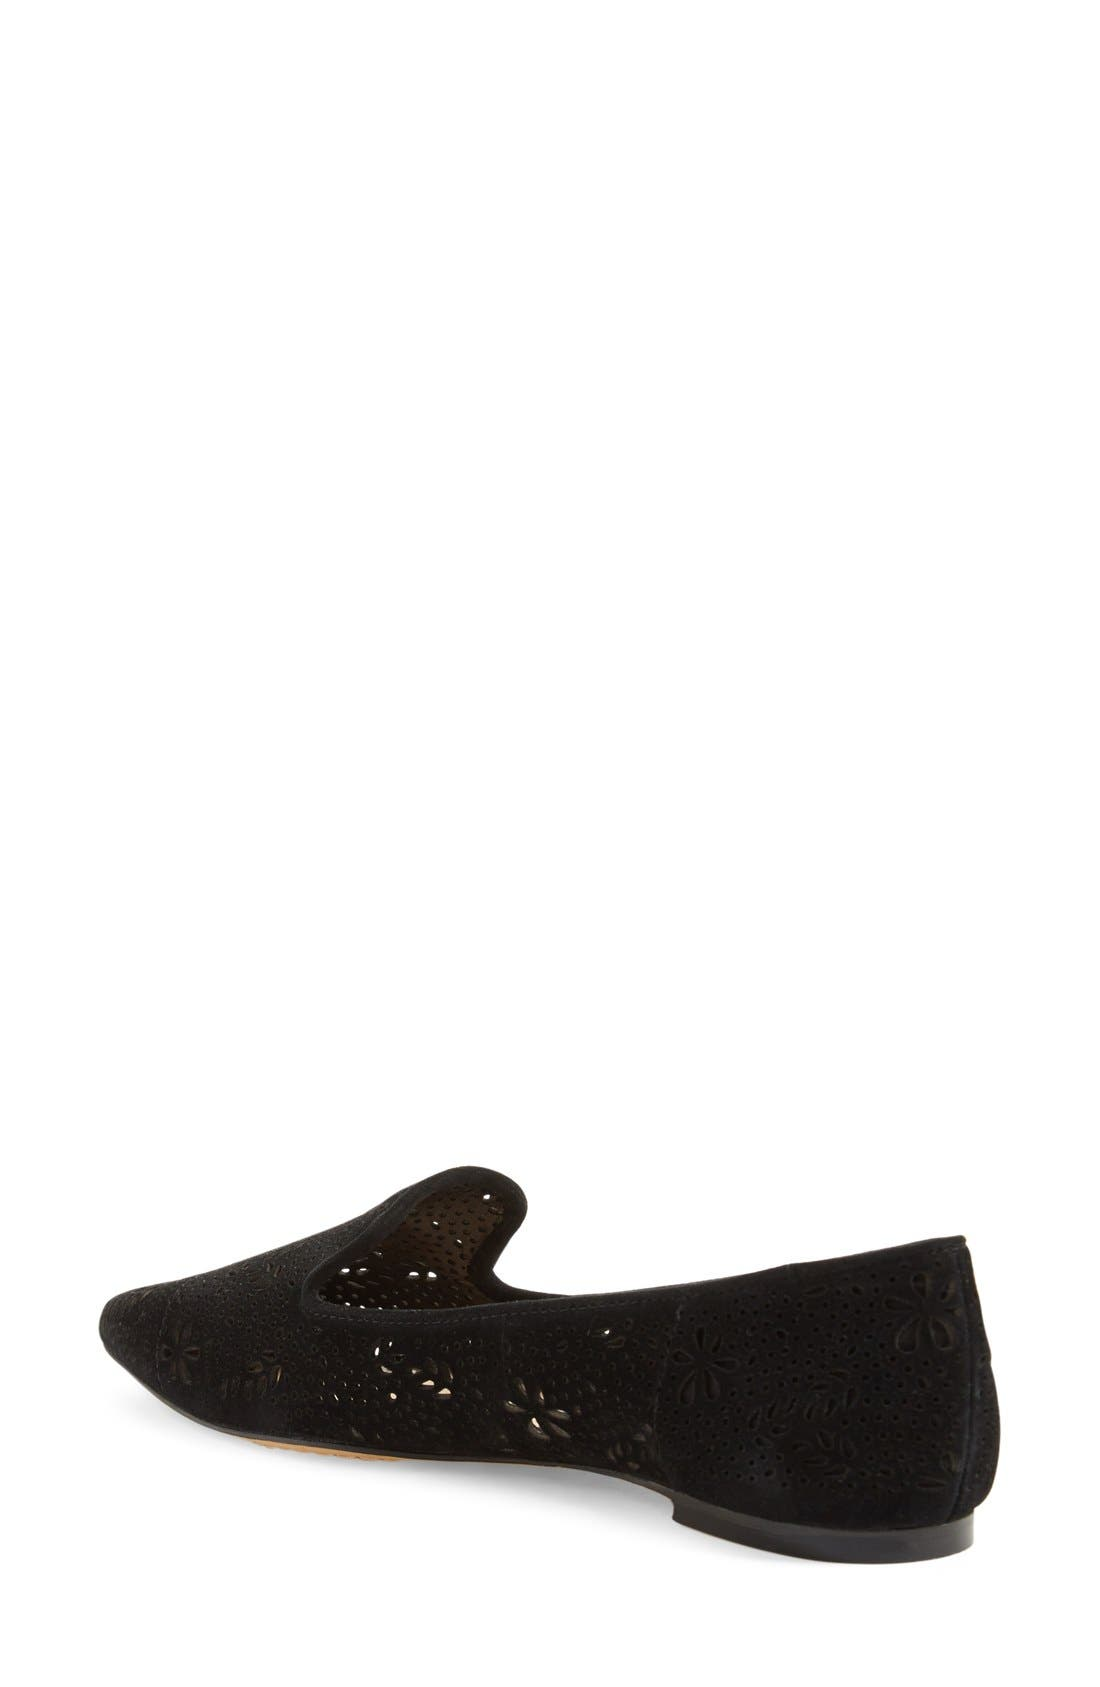 VINCE CAMUTO, 'Earina' Perforated Flat, Alternate thumbnail 2, color, 001